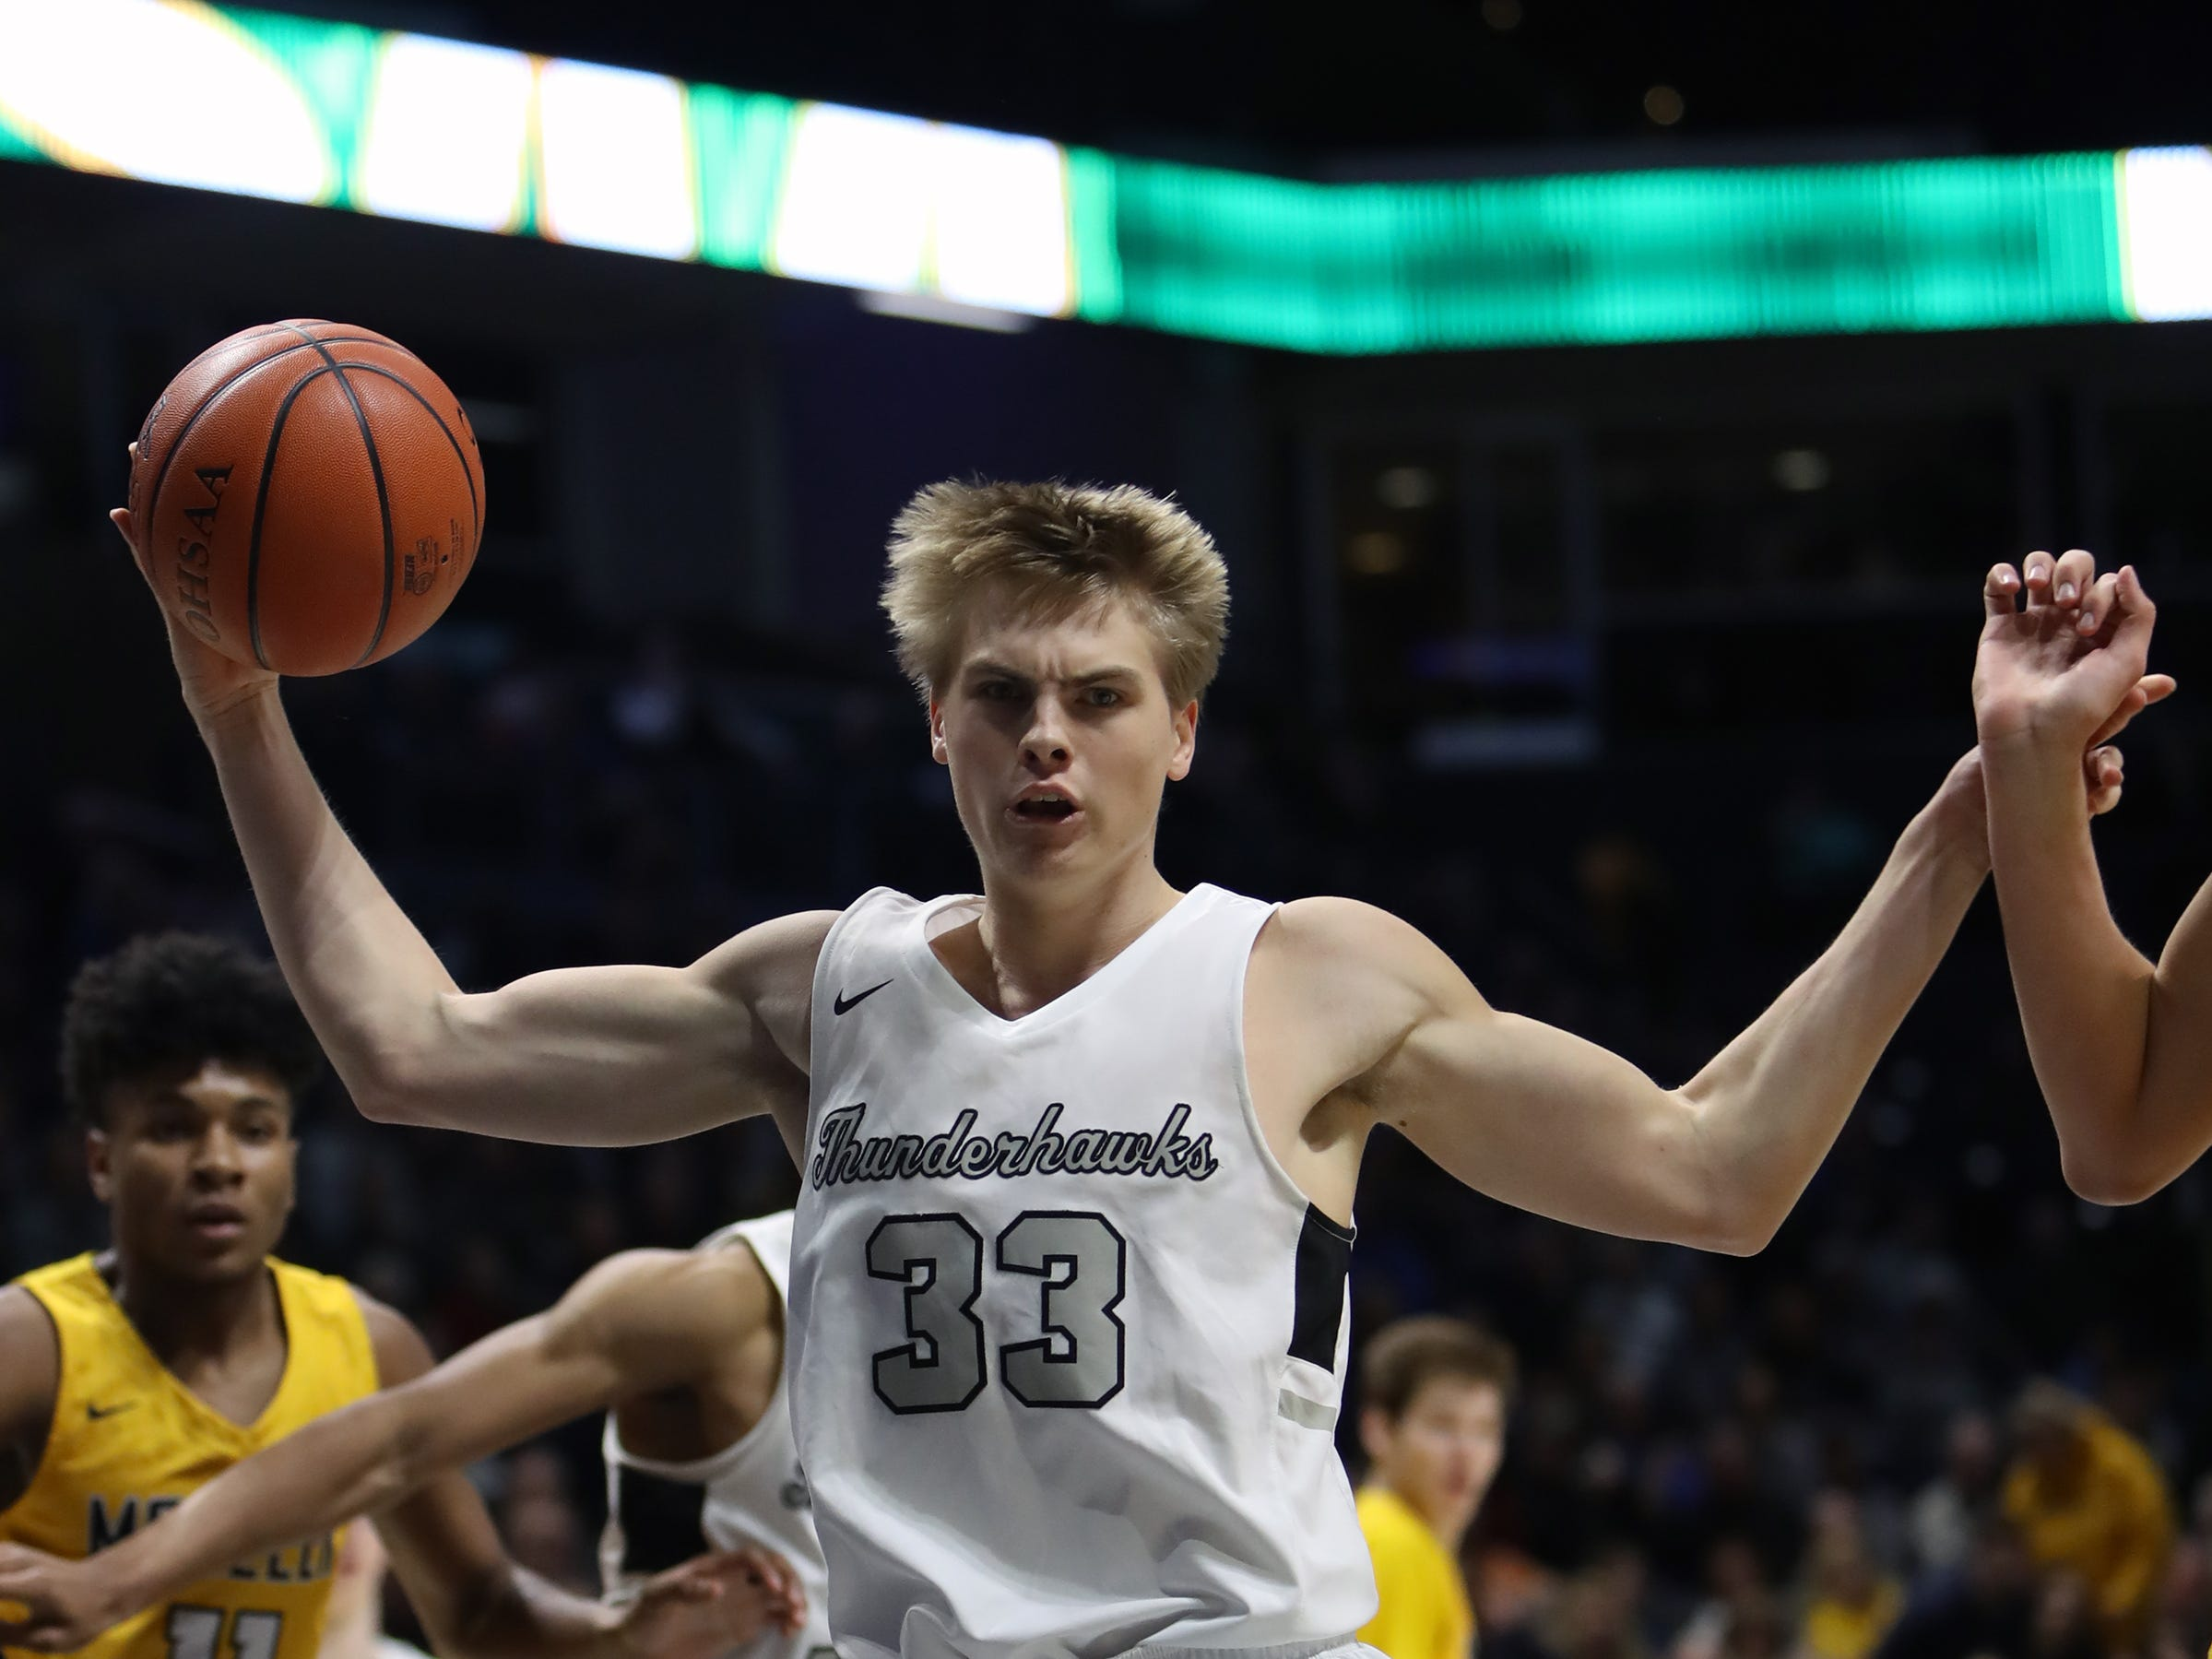 Lakota East center Grant Spicer grabs a defensive rebound in the first half in the boys regional semifinal at the Cintas Center at Xavier University.